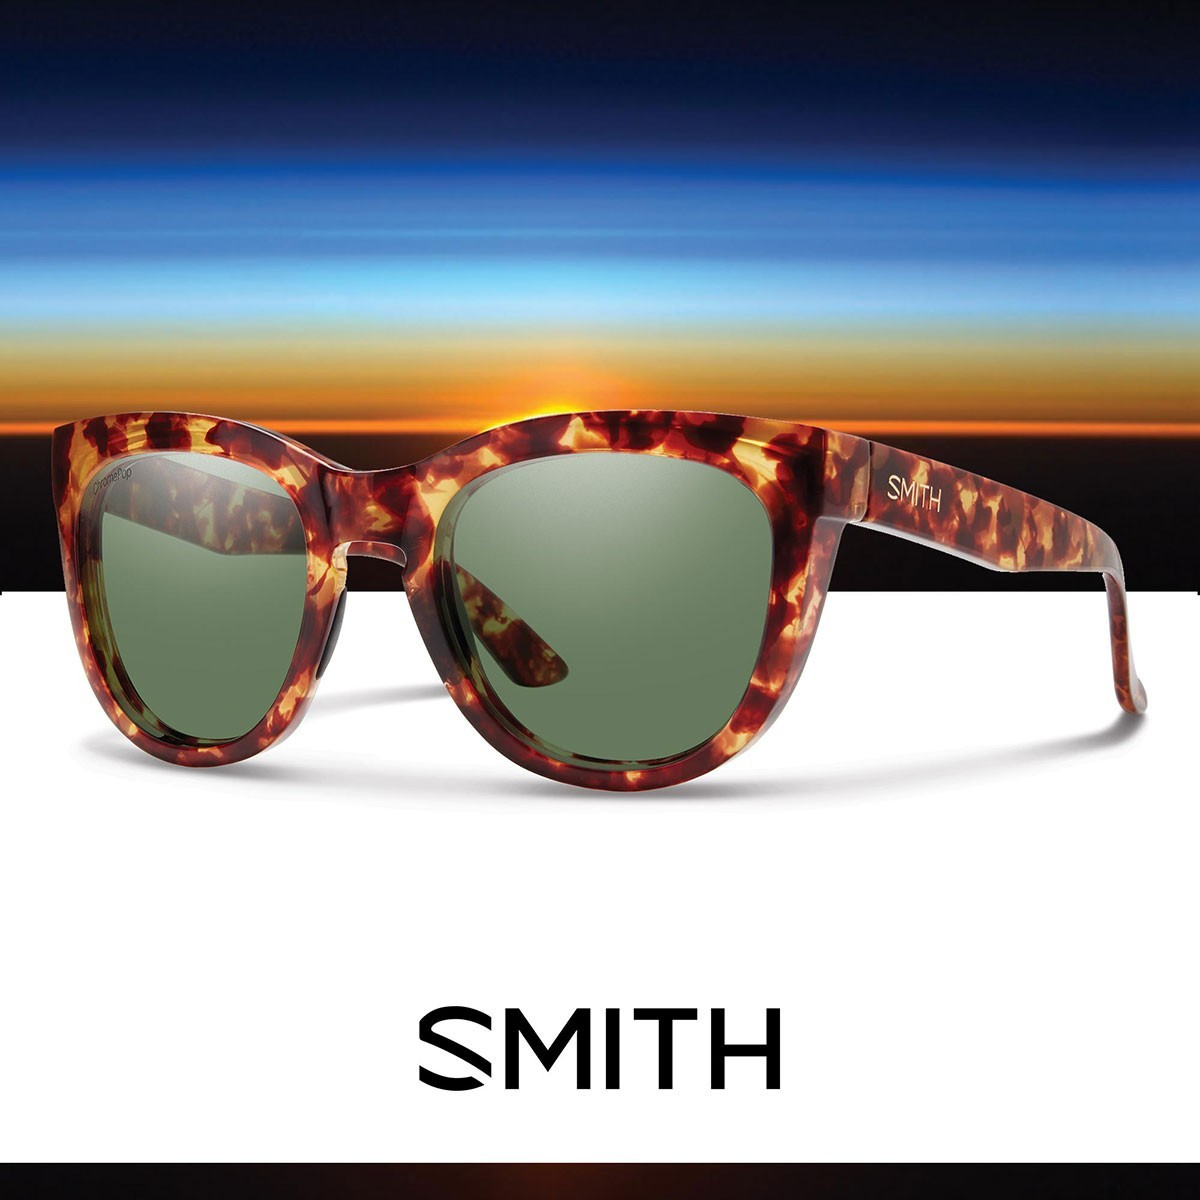 SMITH SIDNEY Yellow Tortoise - Изображение - AQUAMATRIX